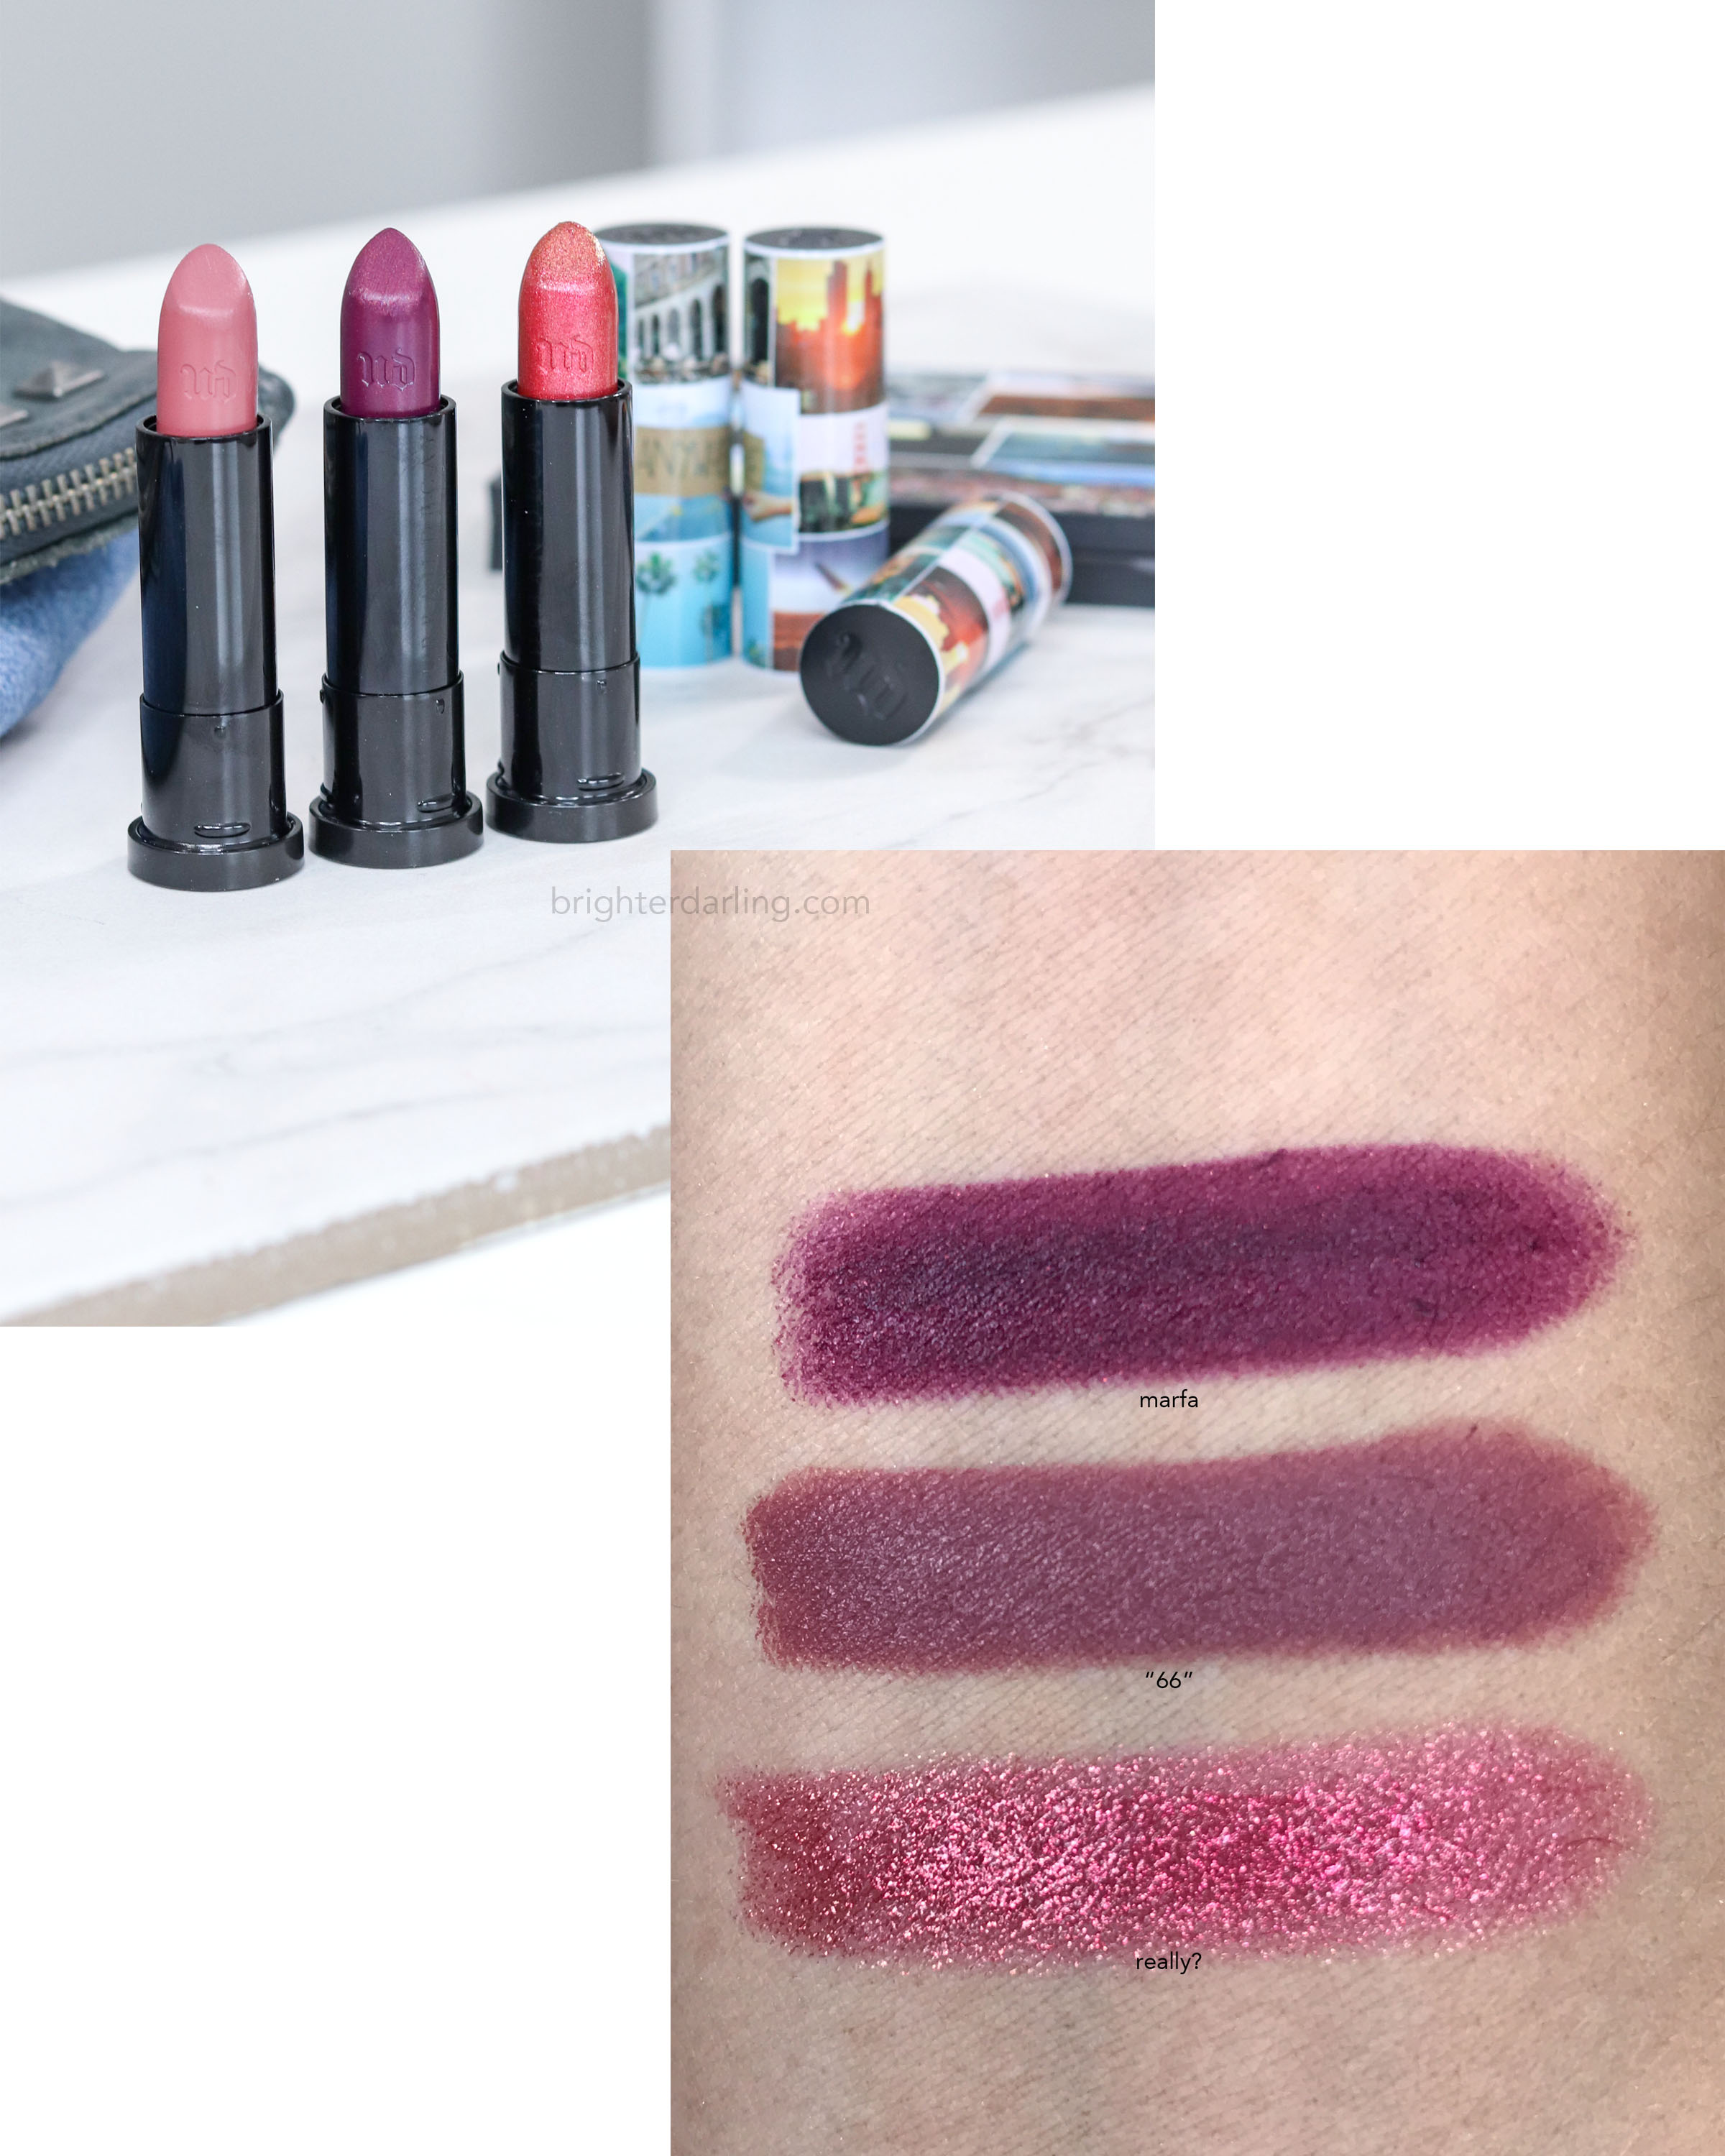 Urban Decay Born To Run Vice Lipstick Swatches | Marfa, 66, Really